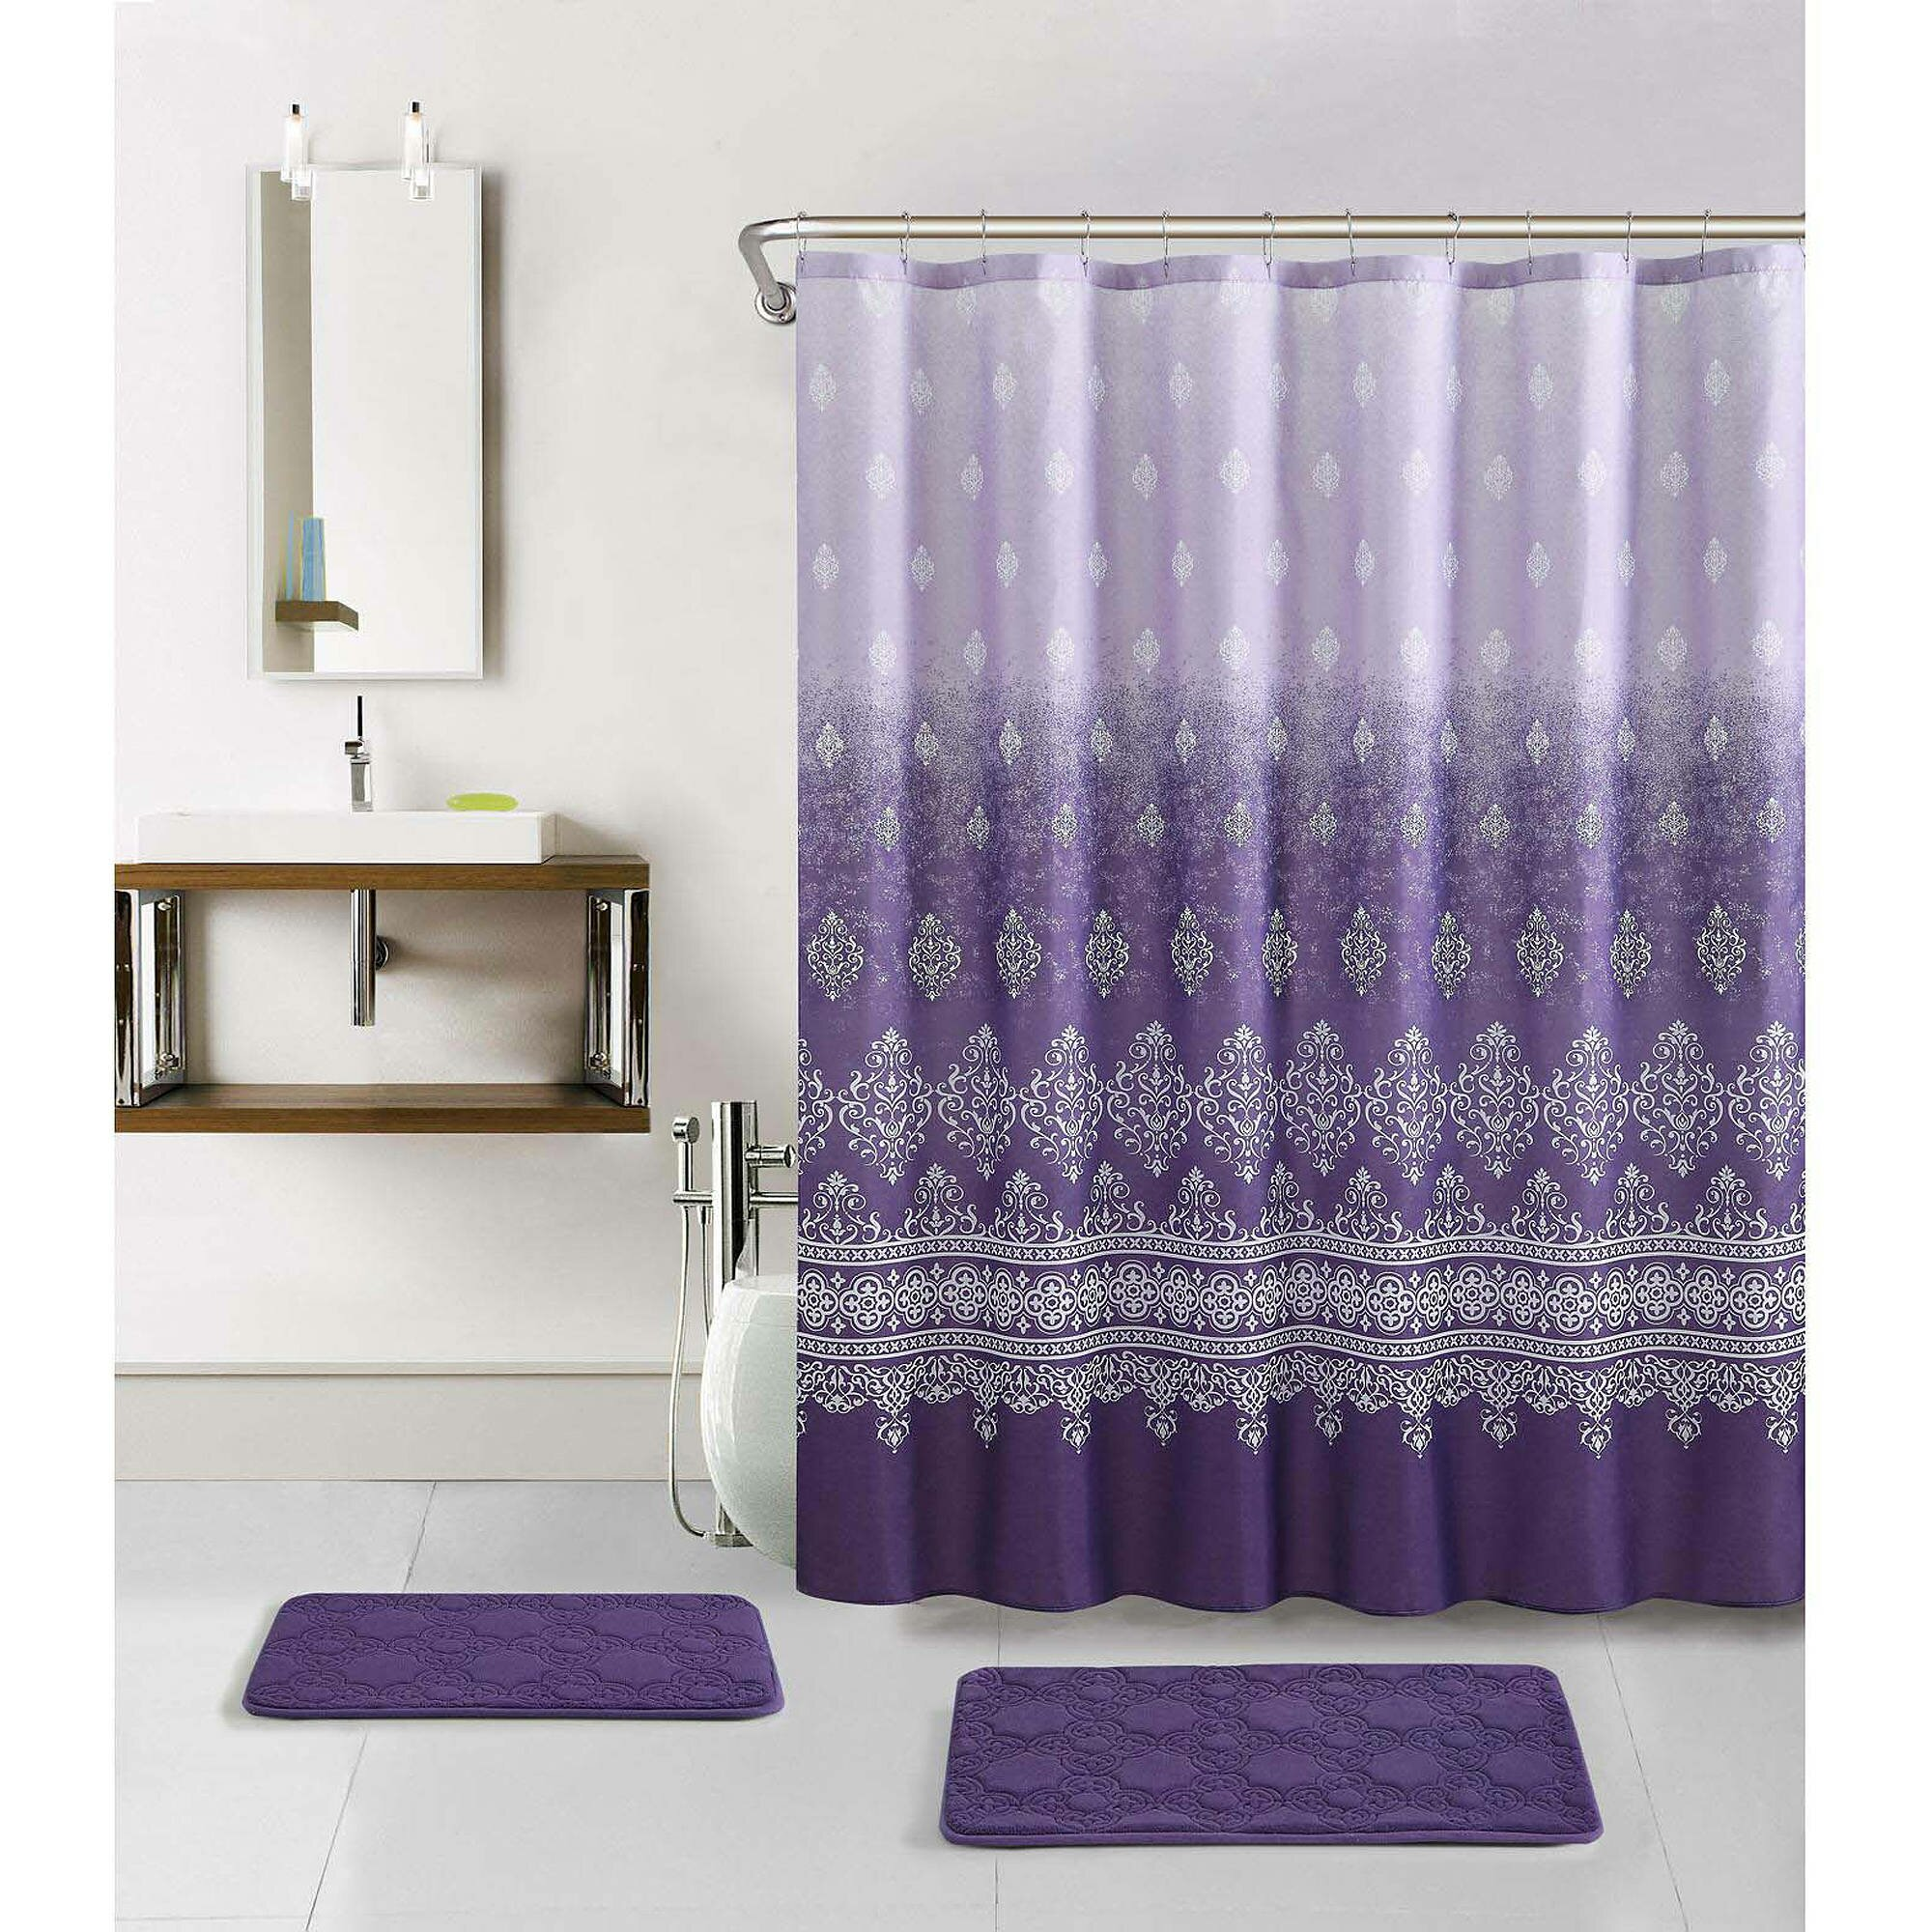 Curtain: Walmart Shower Curtain | Shower Curtain Liner Walmart ...